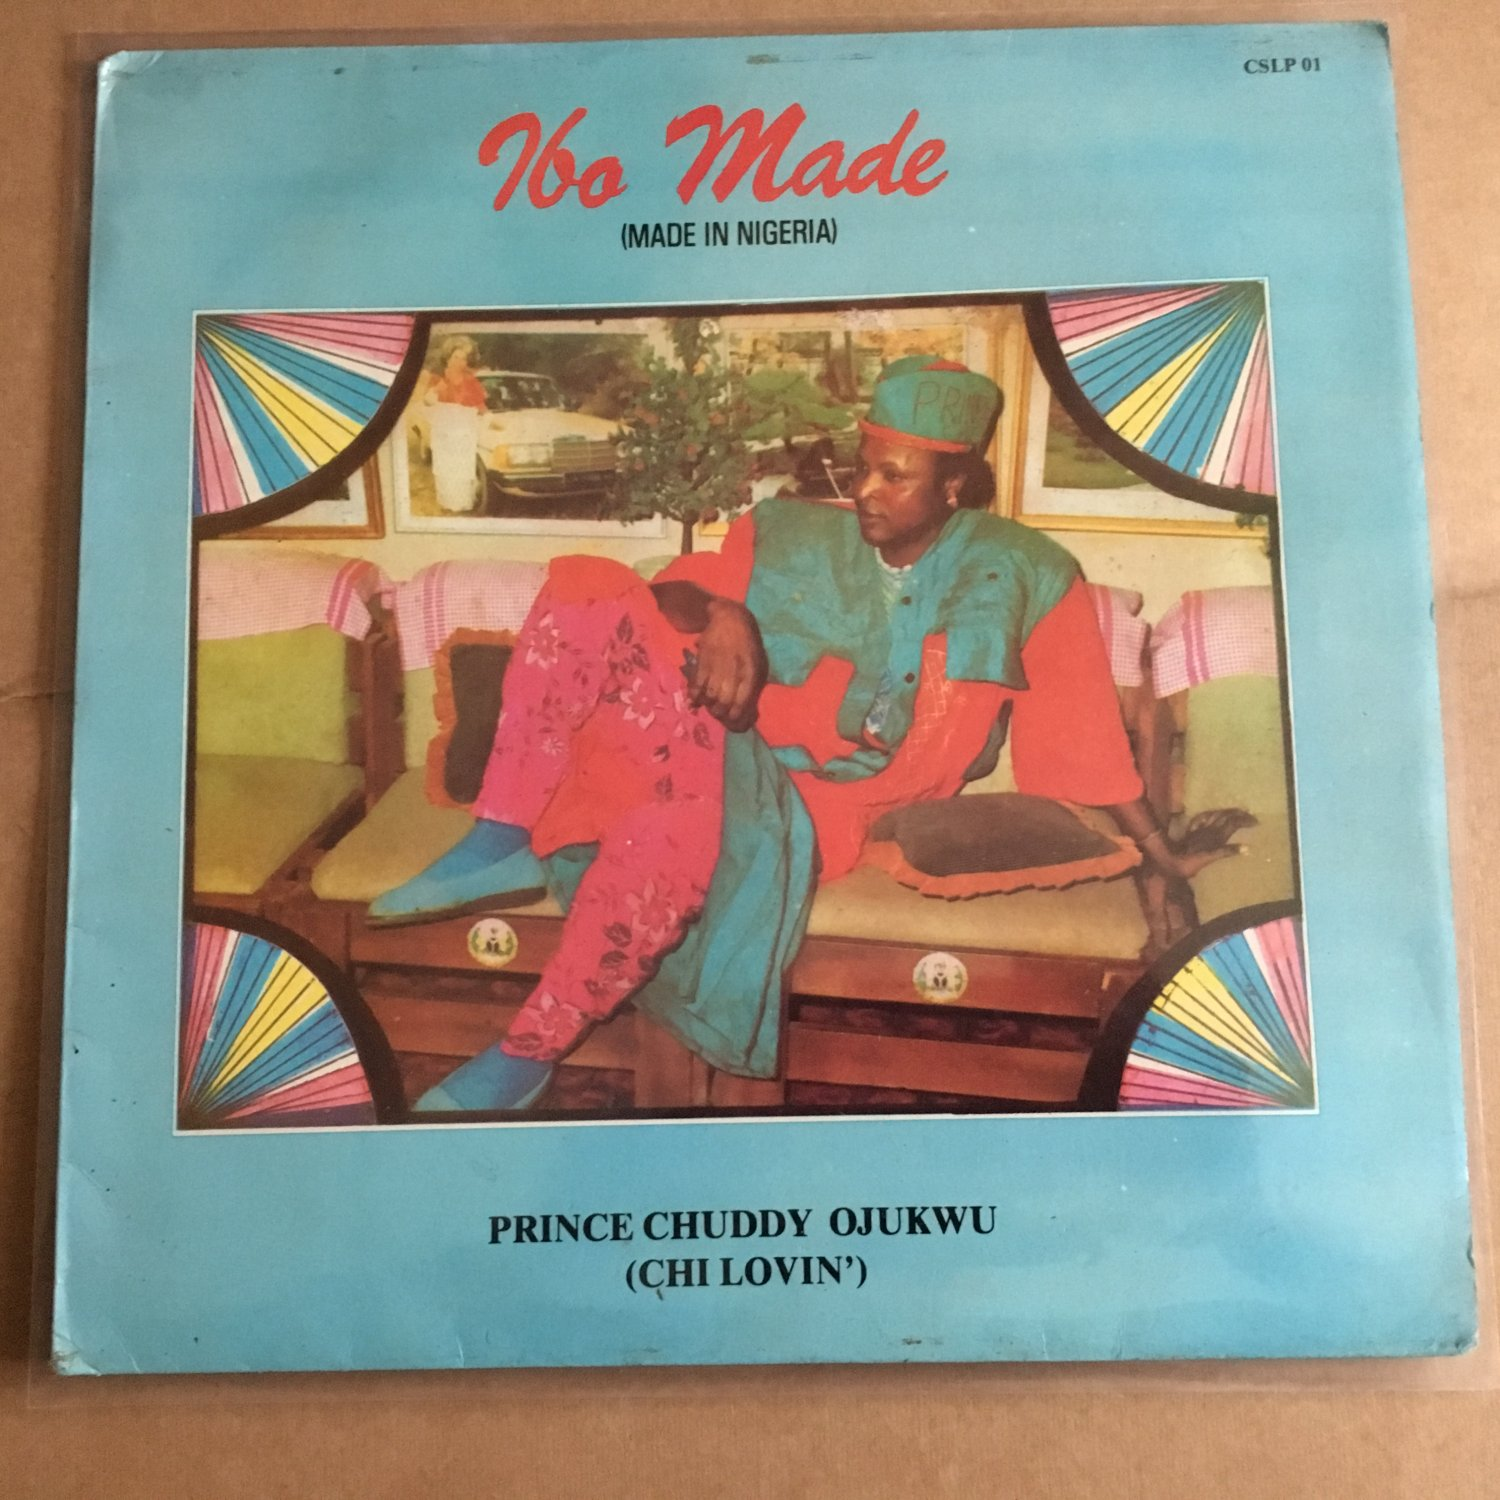 **PRINCE CHUDDY OJUKWU LP ilo made NIGERIA HIGHLIFE mp3 LISTEN